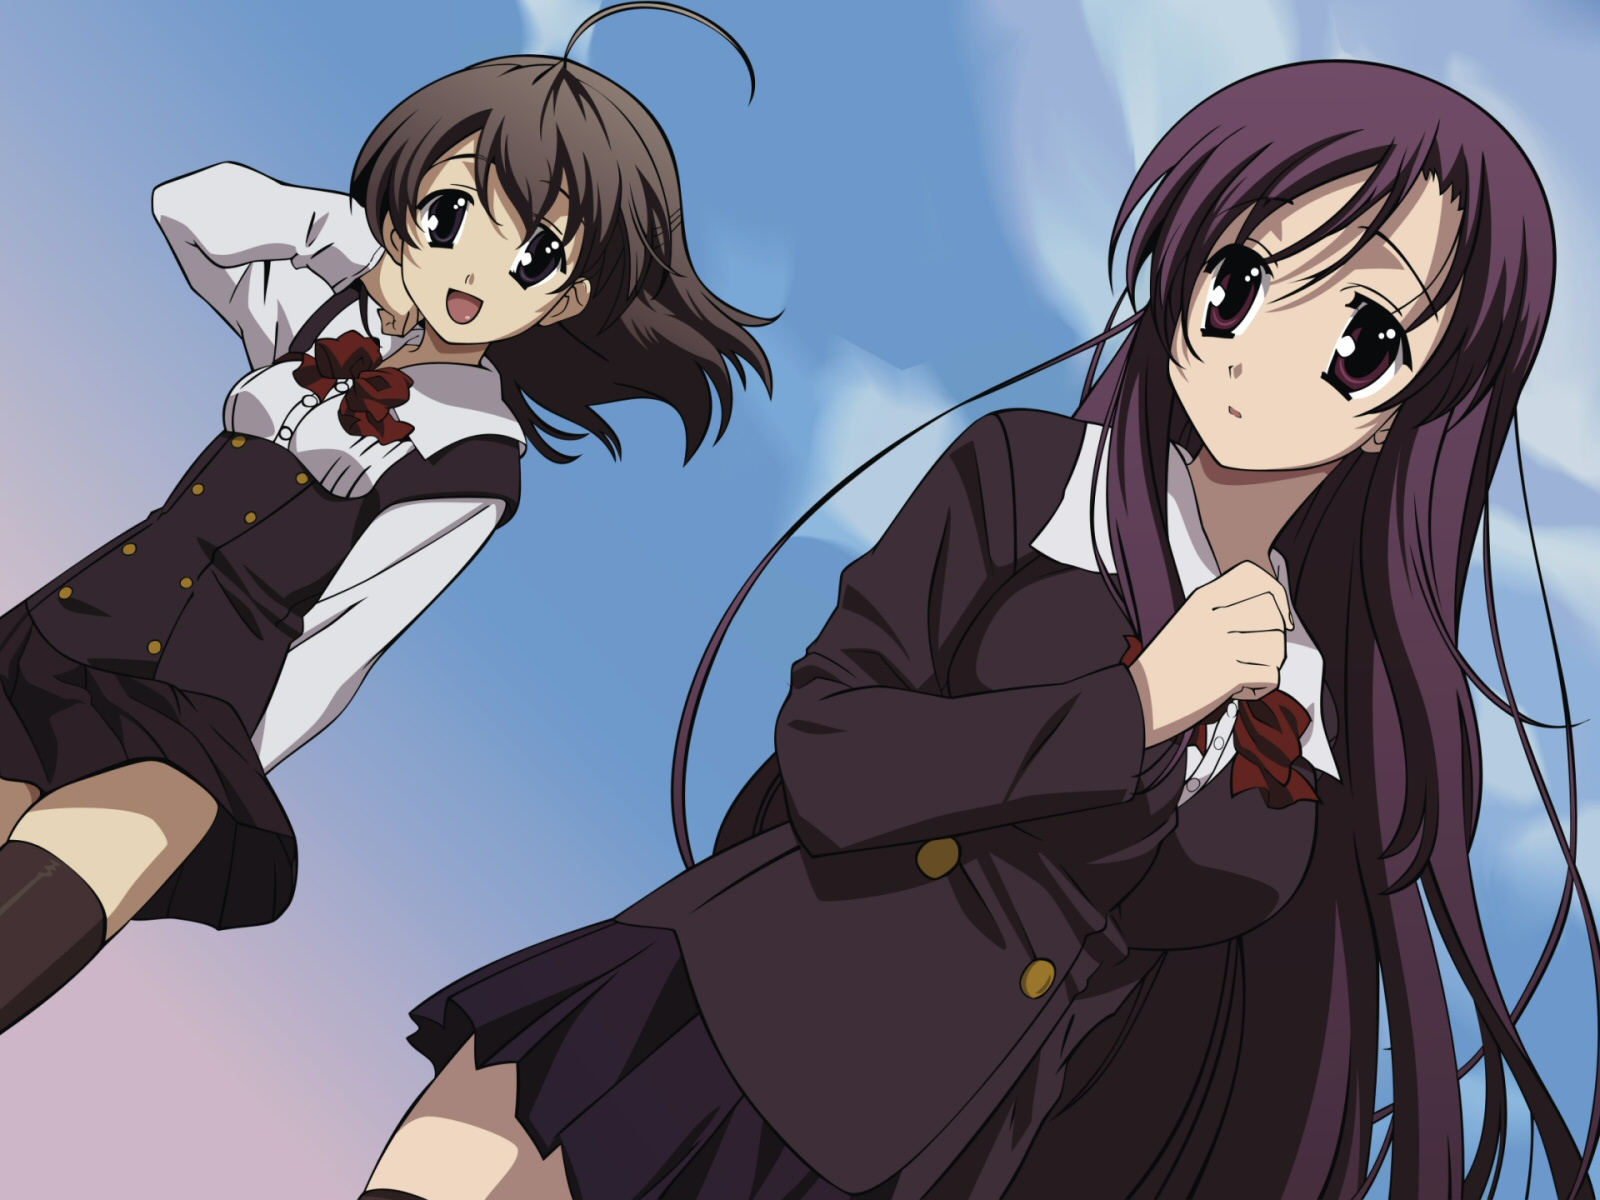 School Days wallpapers Anime HQ School Days pictures 4K 1600x1200